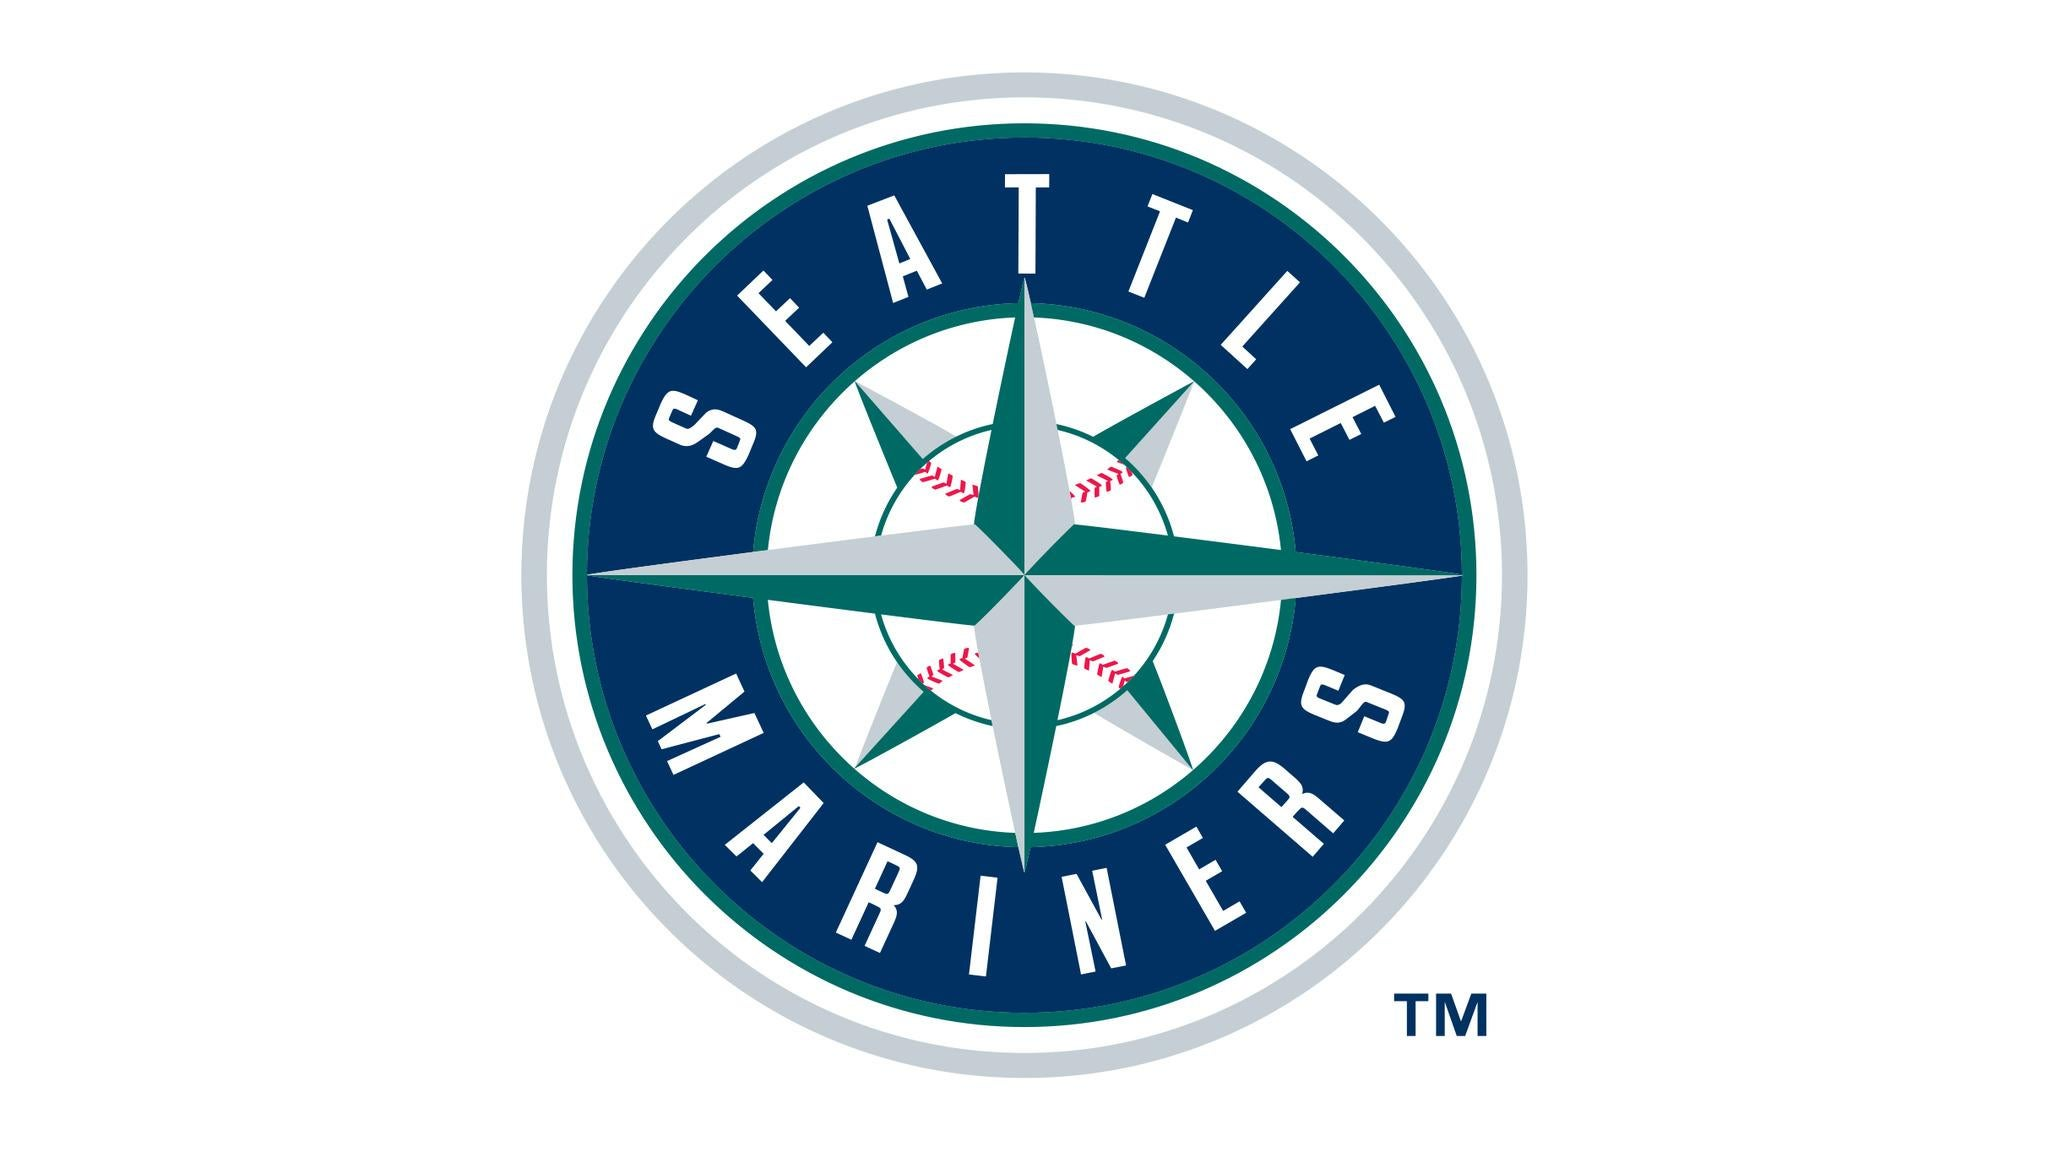 Seattle Mariners vs. Kansas City Royals at Safeco Field